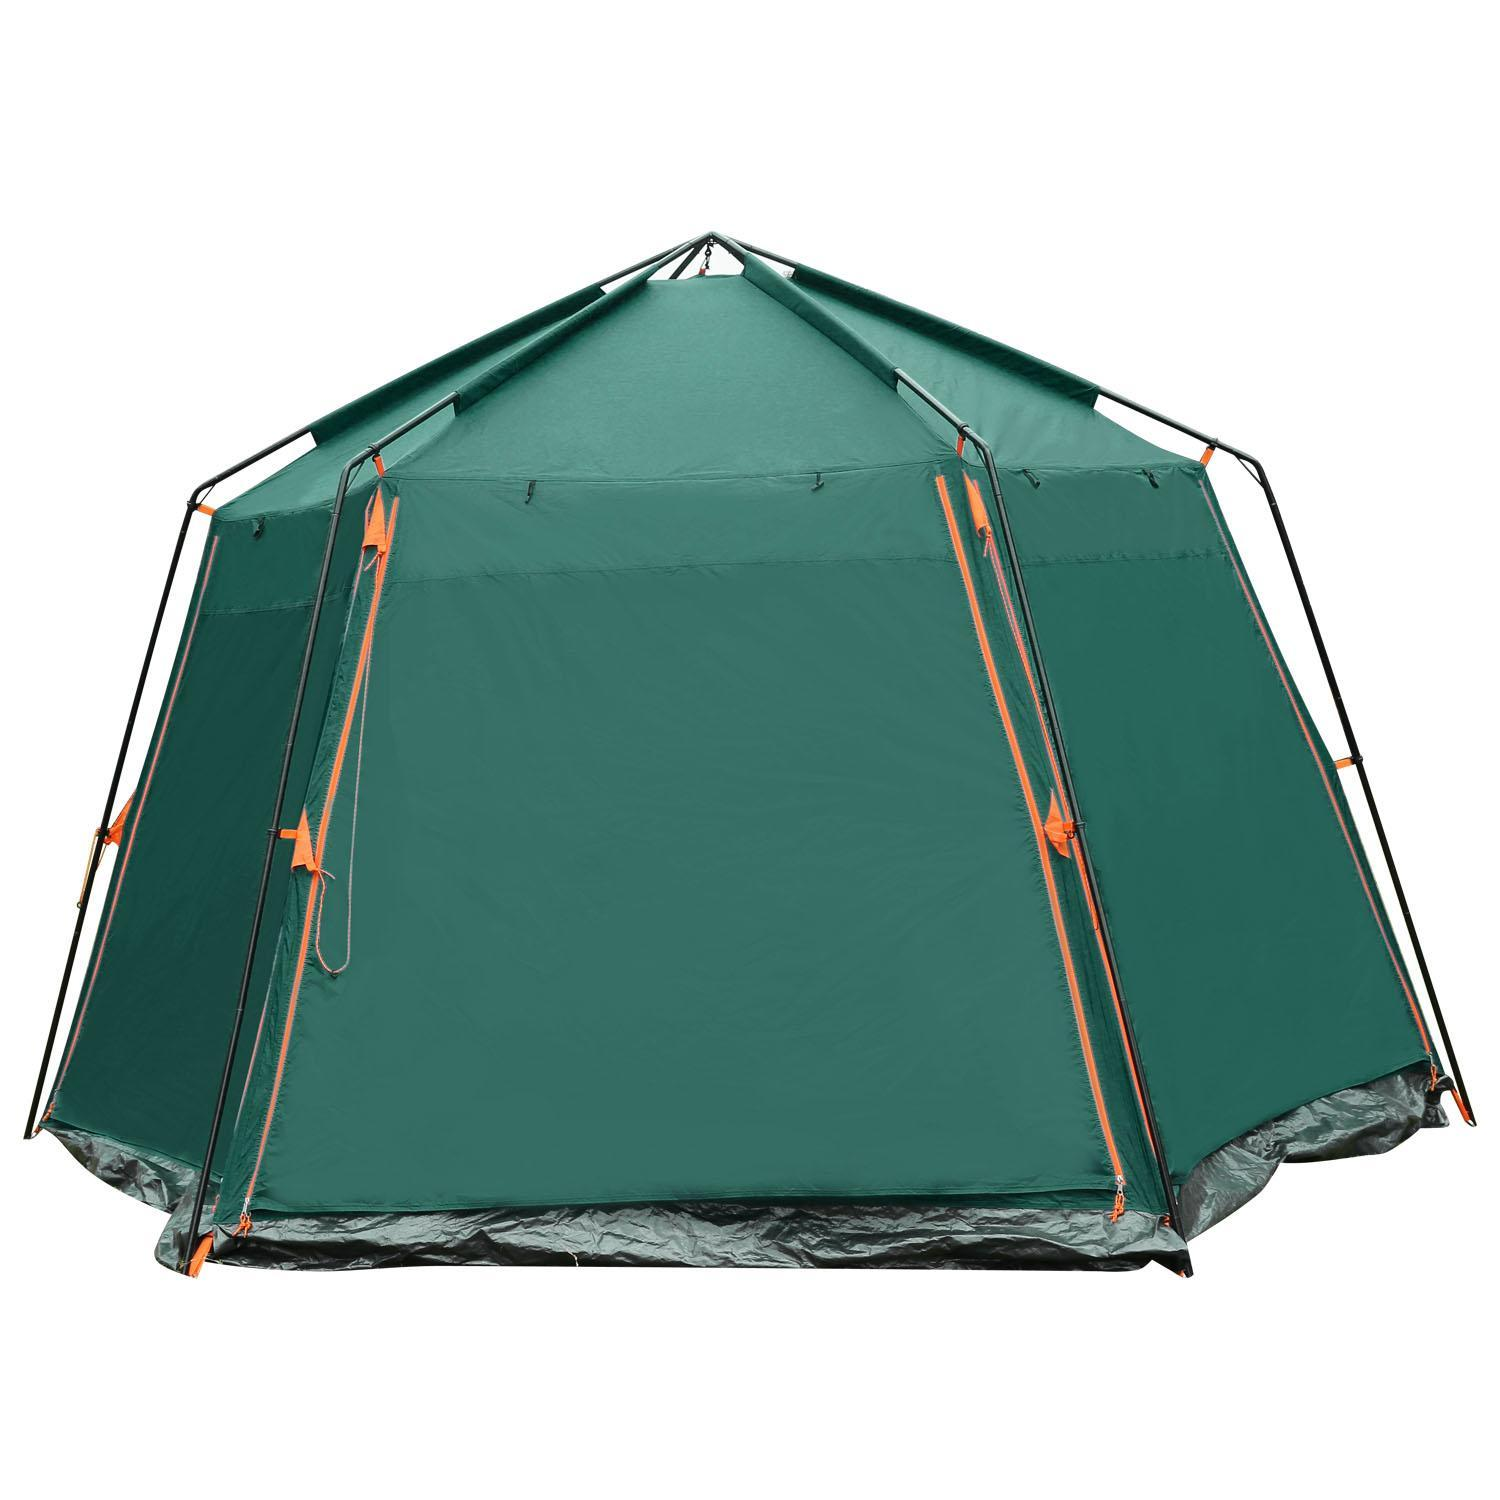 Wishmall Lager Waterproof Instant Tent 8-Person Family Cabin Tent with Two Doors WIMA by